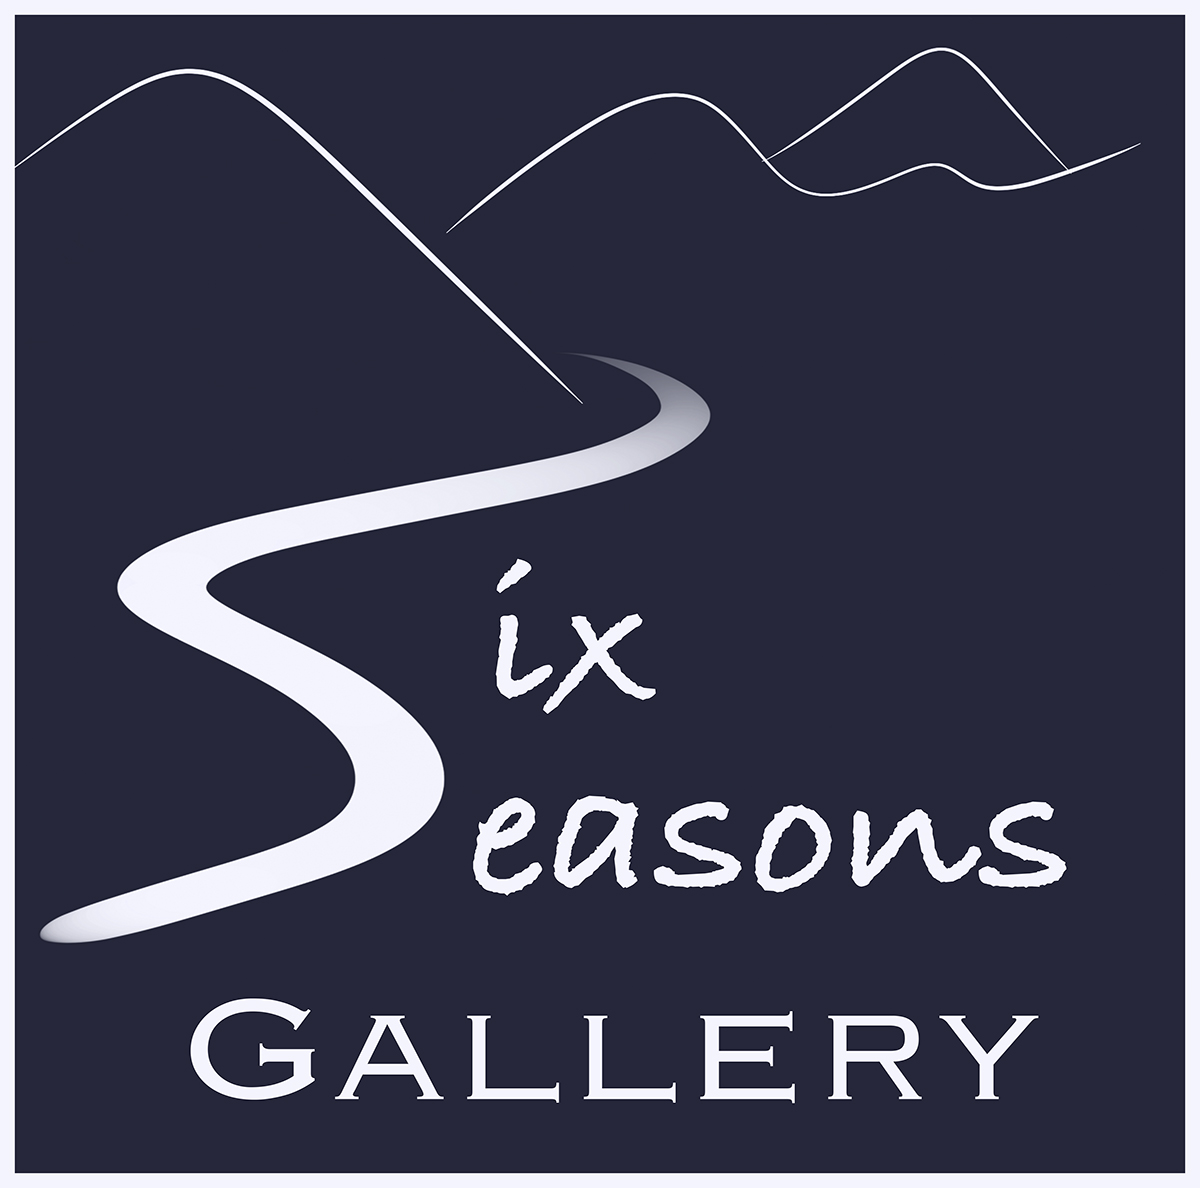 - Together with my husband, Richard Childs, who is a landscape Photographer we have a gallery in the Ironbridge Gorge at Maws Centre, Jackfield.Lots more to see and we would love to meet you if you're in the area.